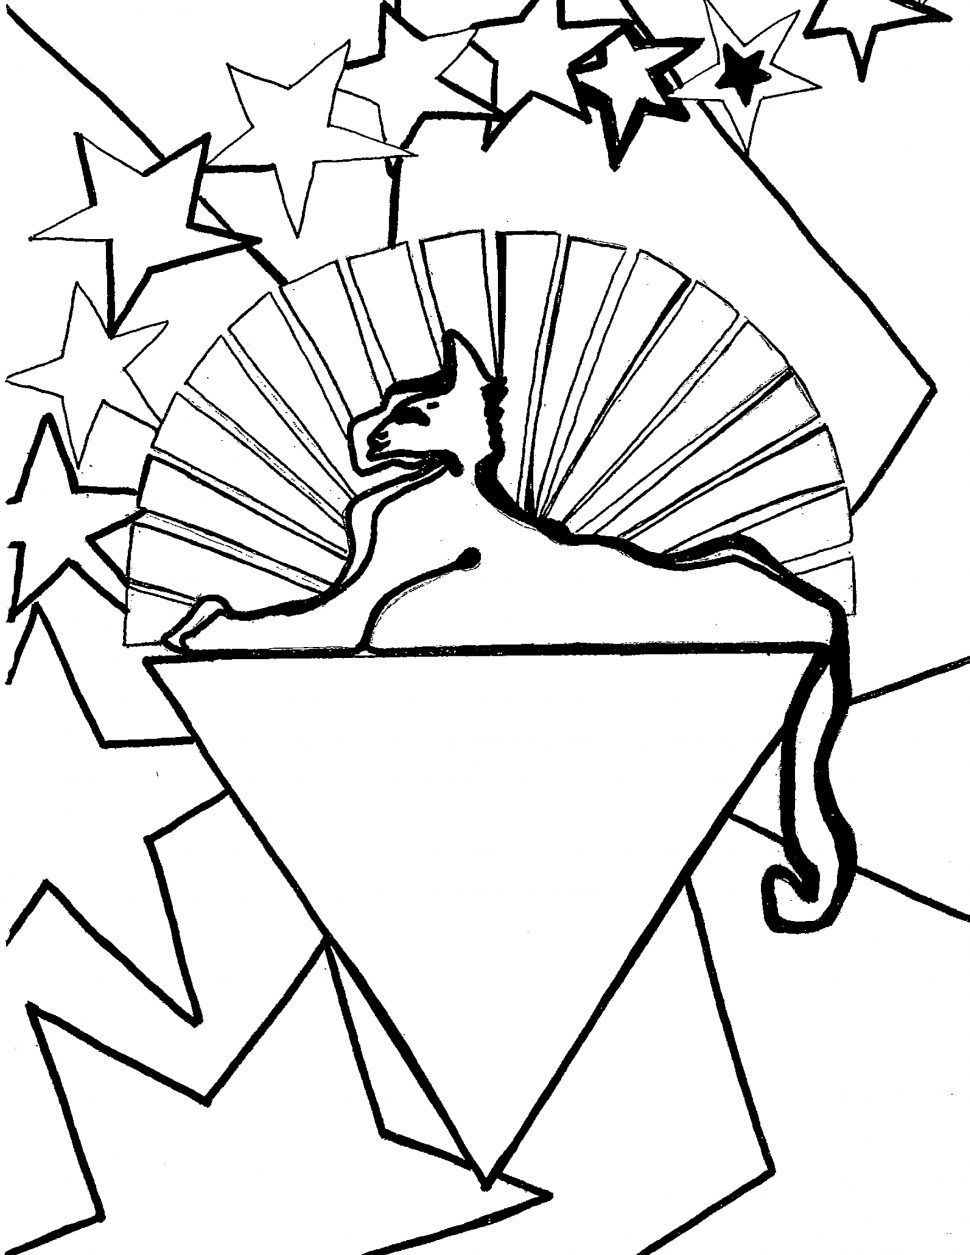 - Grateful Dead Coloring Pages Free Coloring Books, Coloring Pages